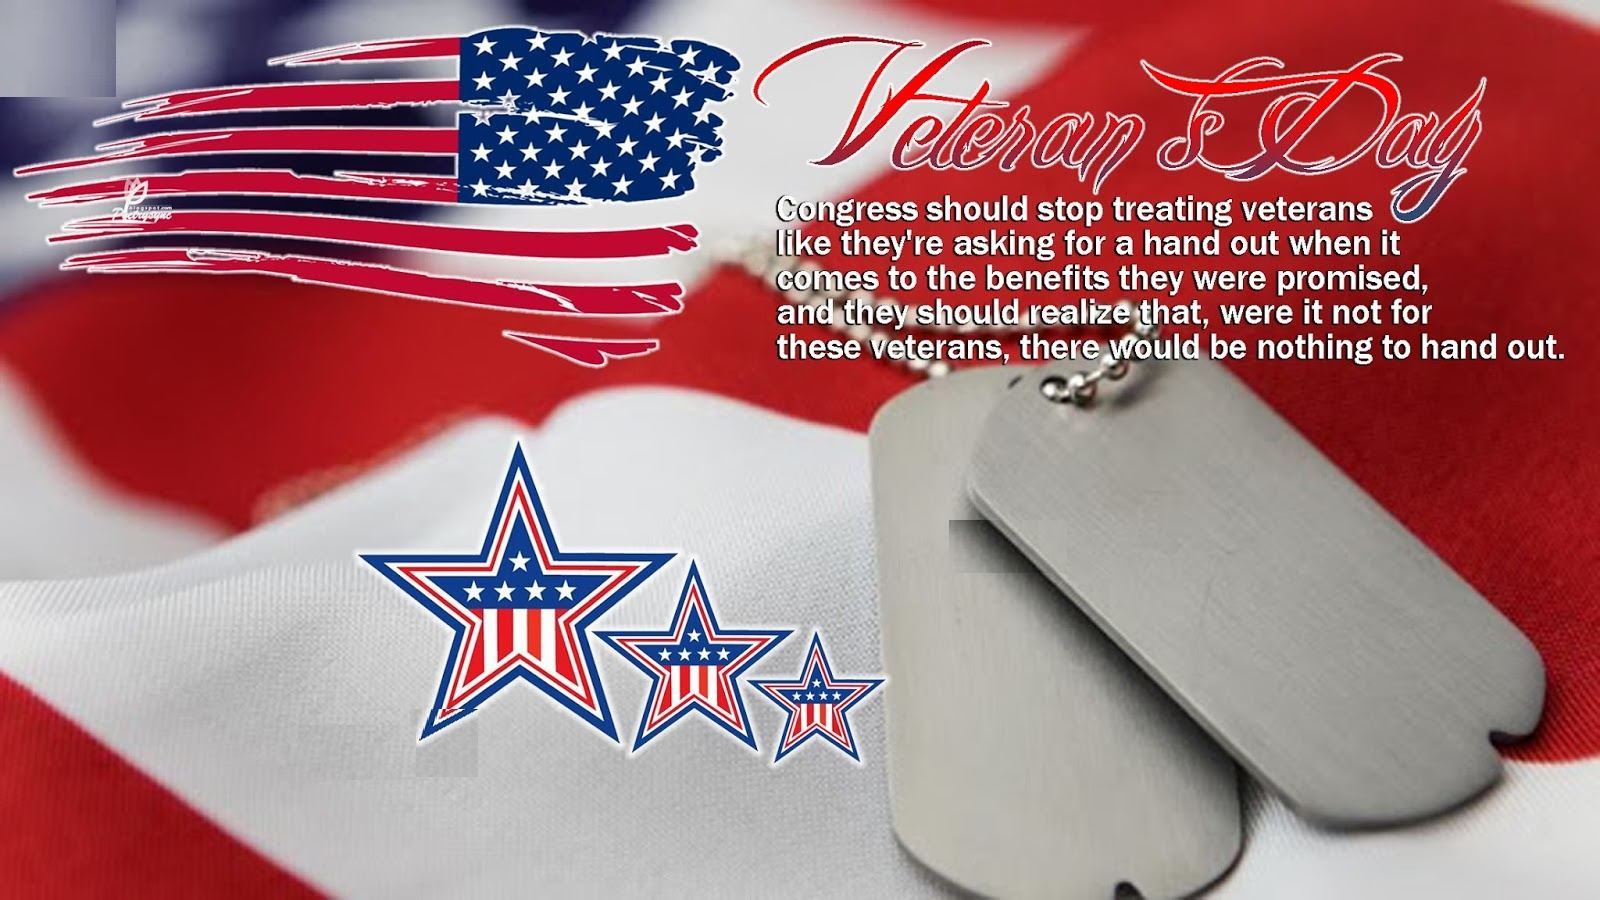 Veterans day cards 2018 happy veterans day ecards happy veterans day cards m4hsunfo